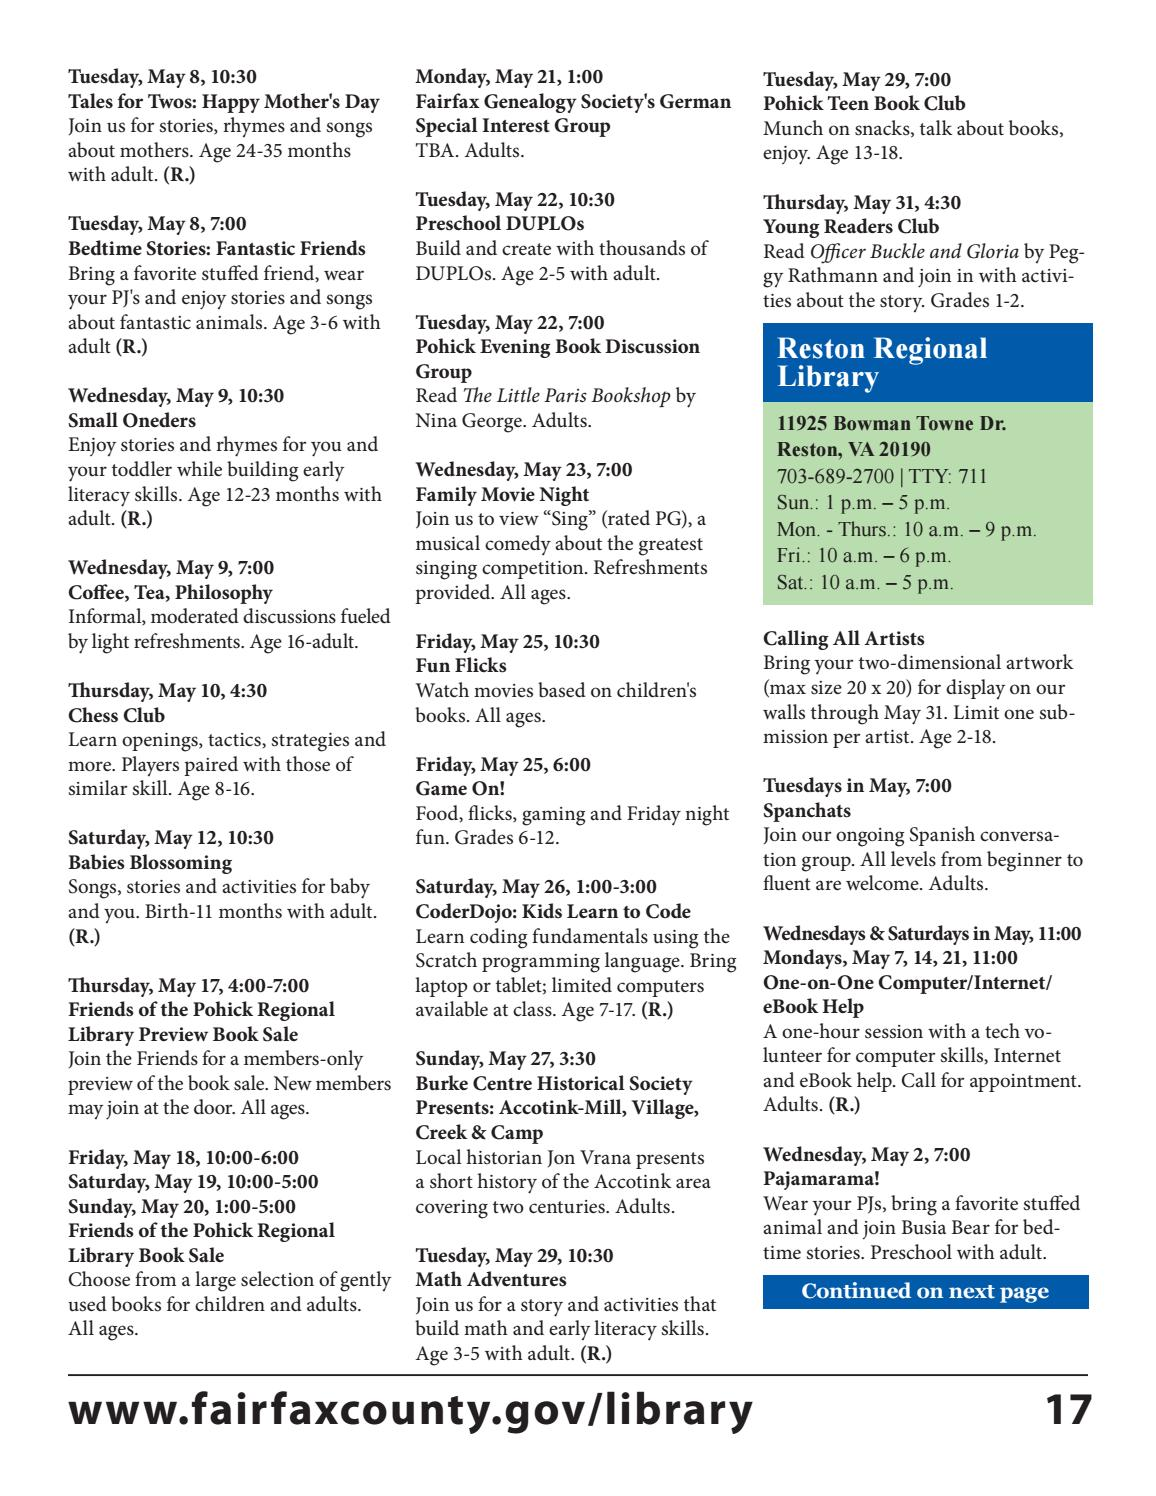 may 2018 free events calendarfairfax county public library - issuu